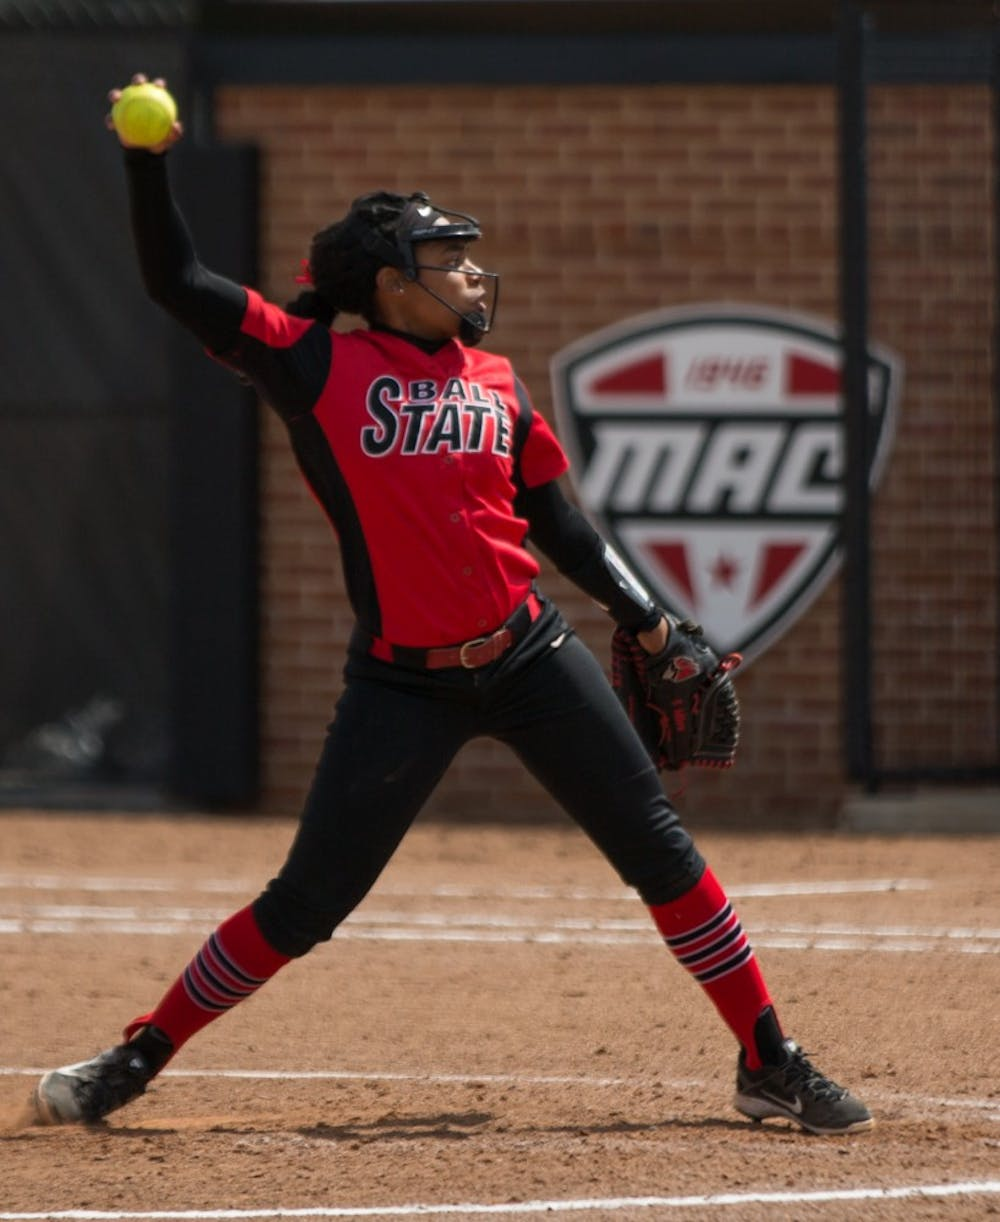 Aeshia Miles pitches to Kent State in the top of the third inning during the Cardinals' game against the Golden Eagles April 7 at Softball Field at First Merchants Ballpark Complex. Eric Pritchett, DN